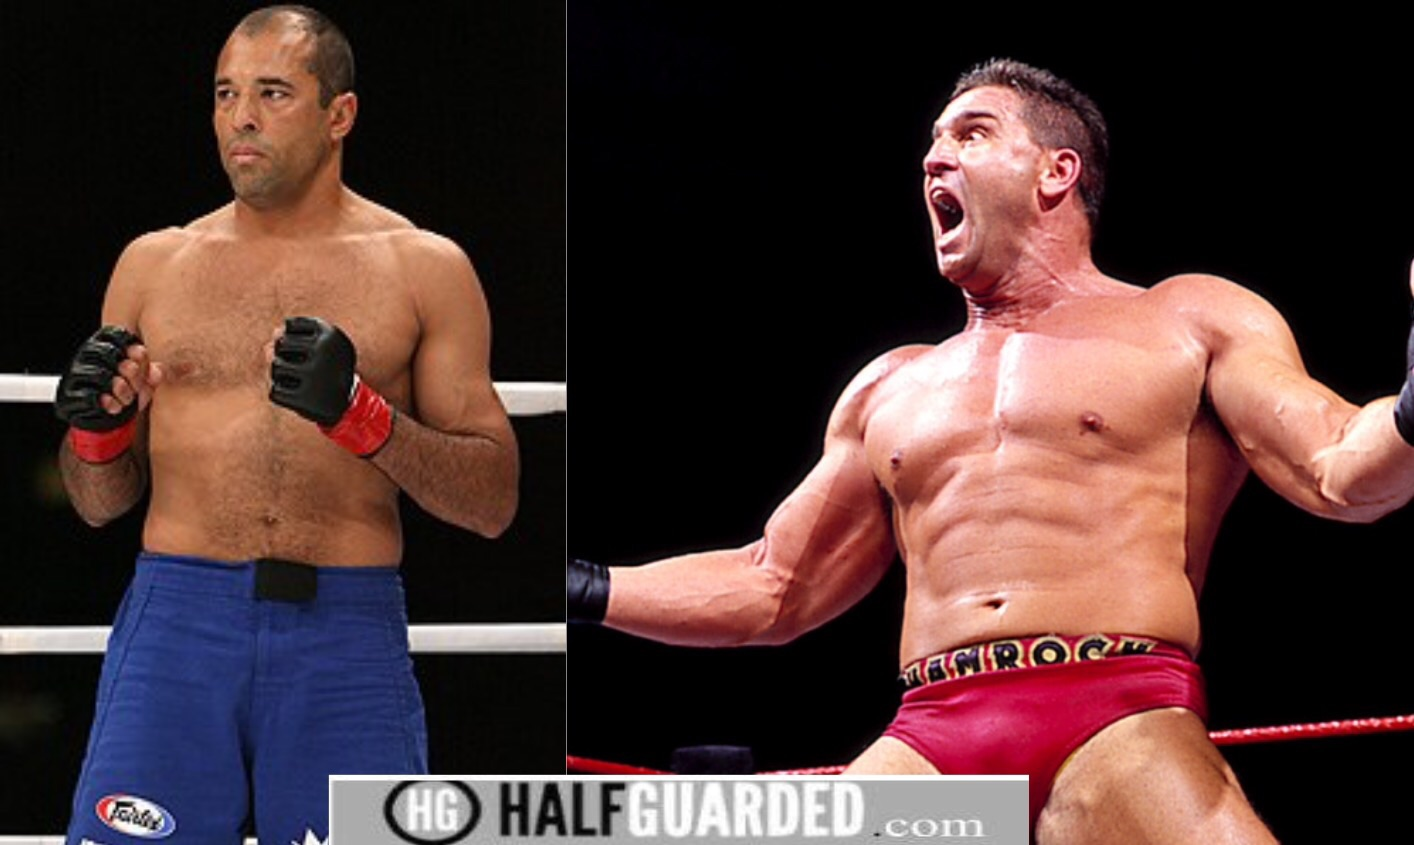 10 of the biggest overhyped mma fighters of all time - Top 10 Most Overrated Fighters Of All Time